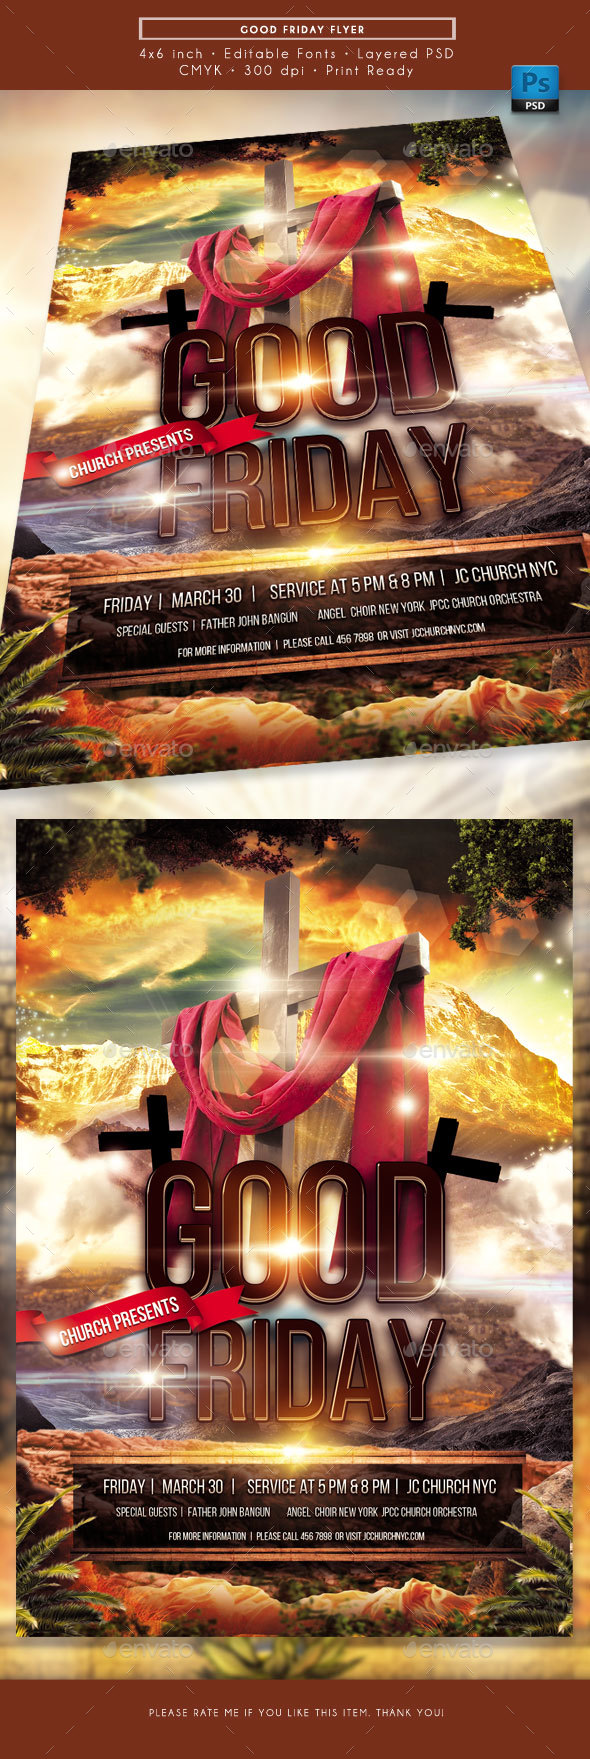 Good Friday Church Flyer - Church Flyers